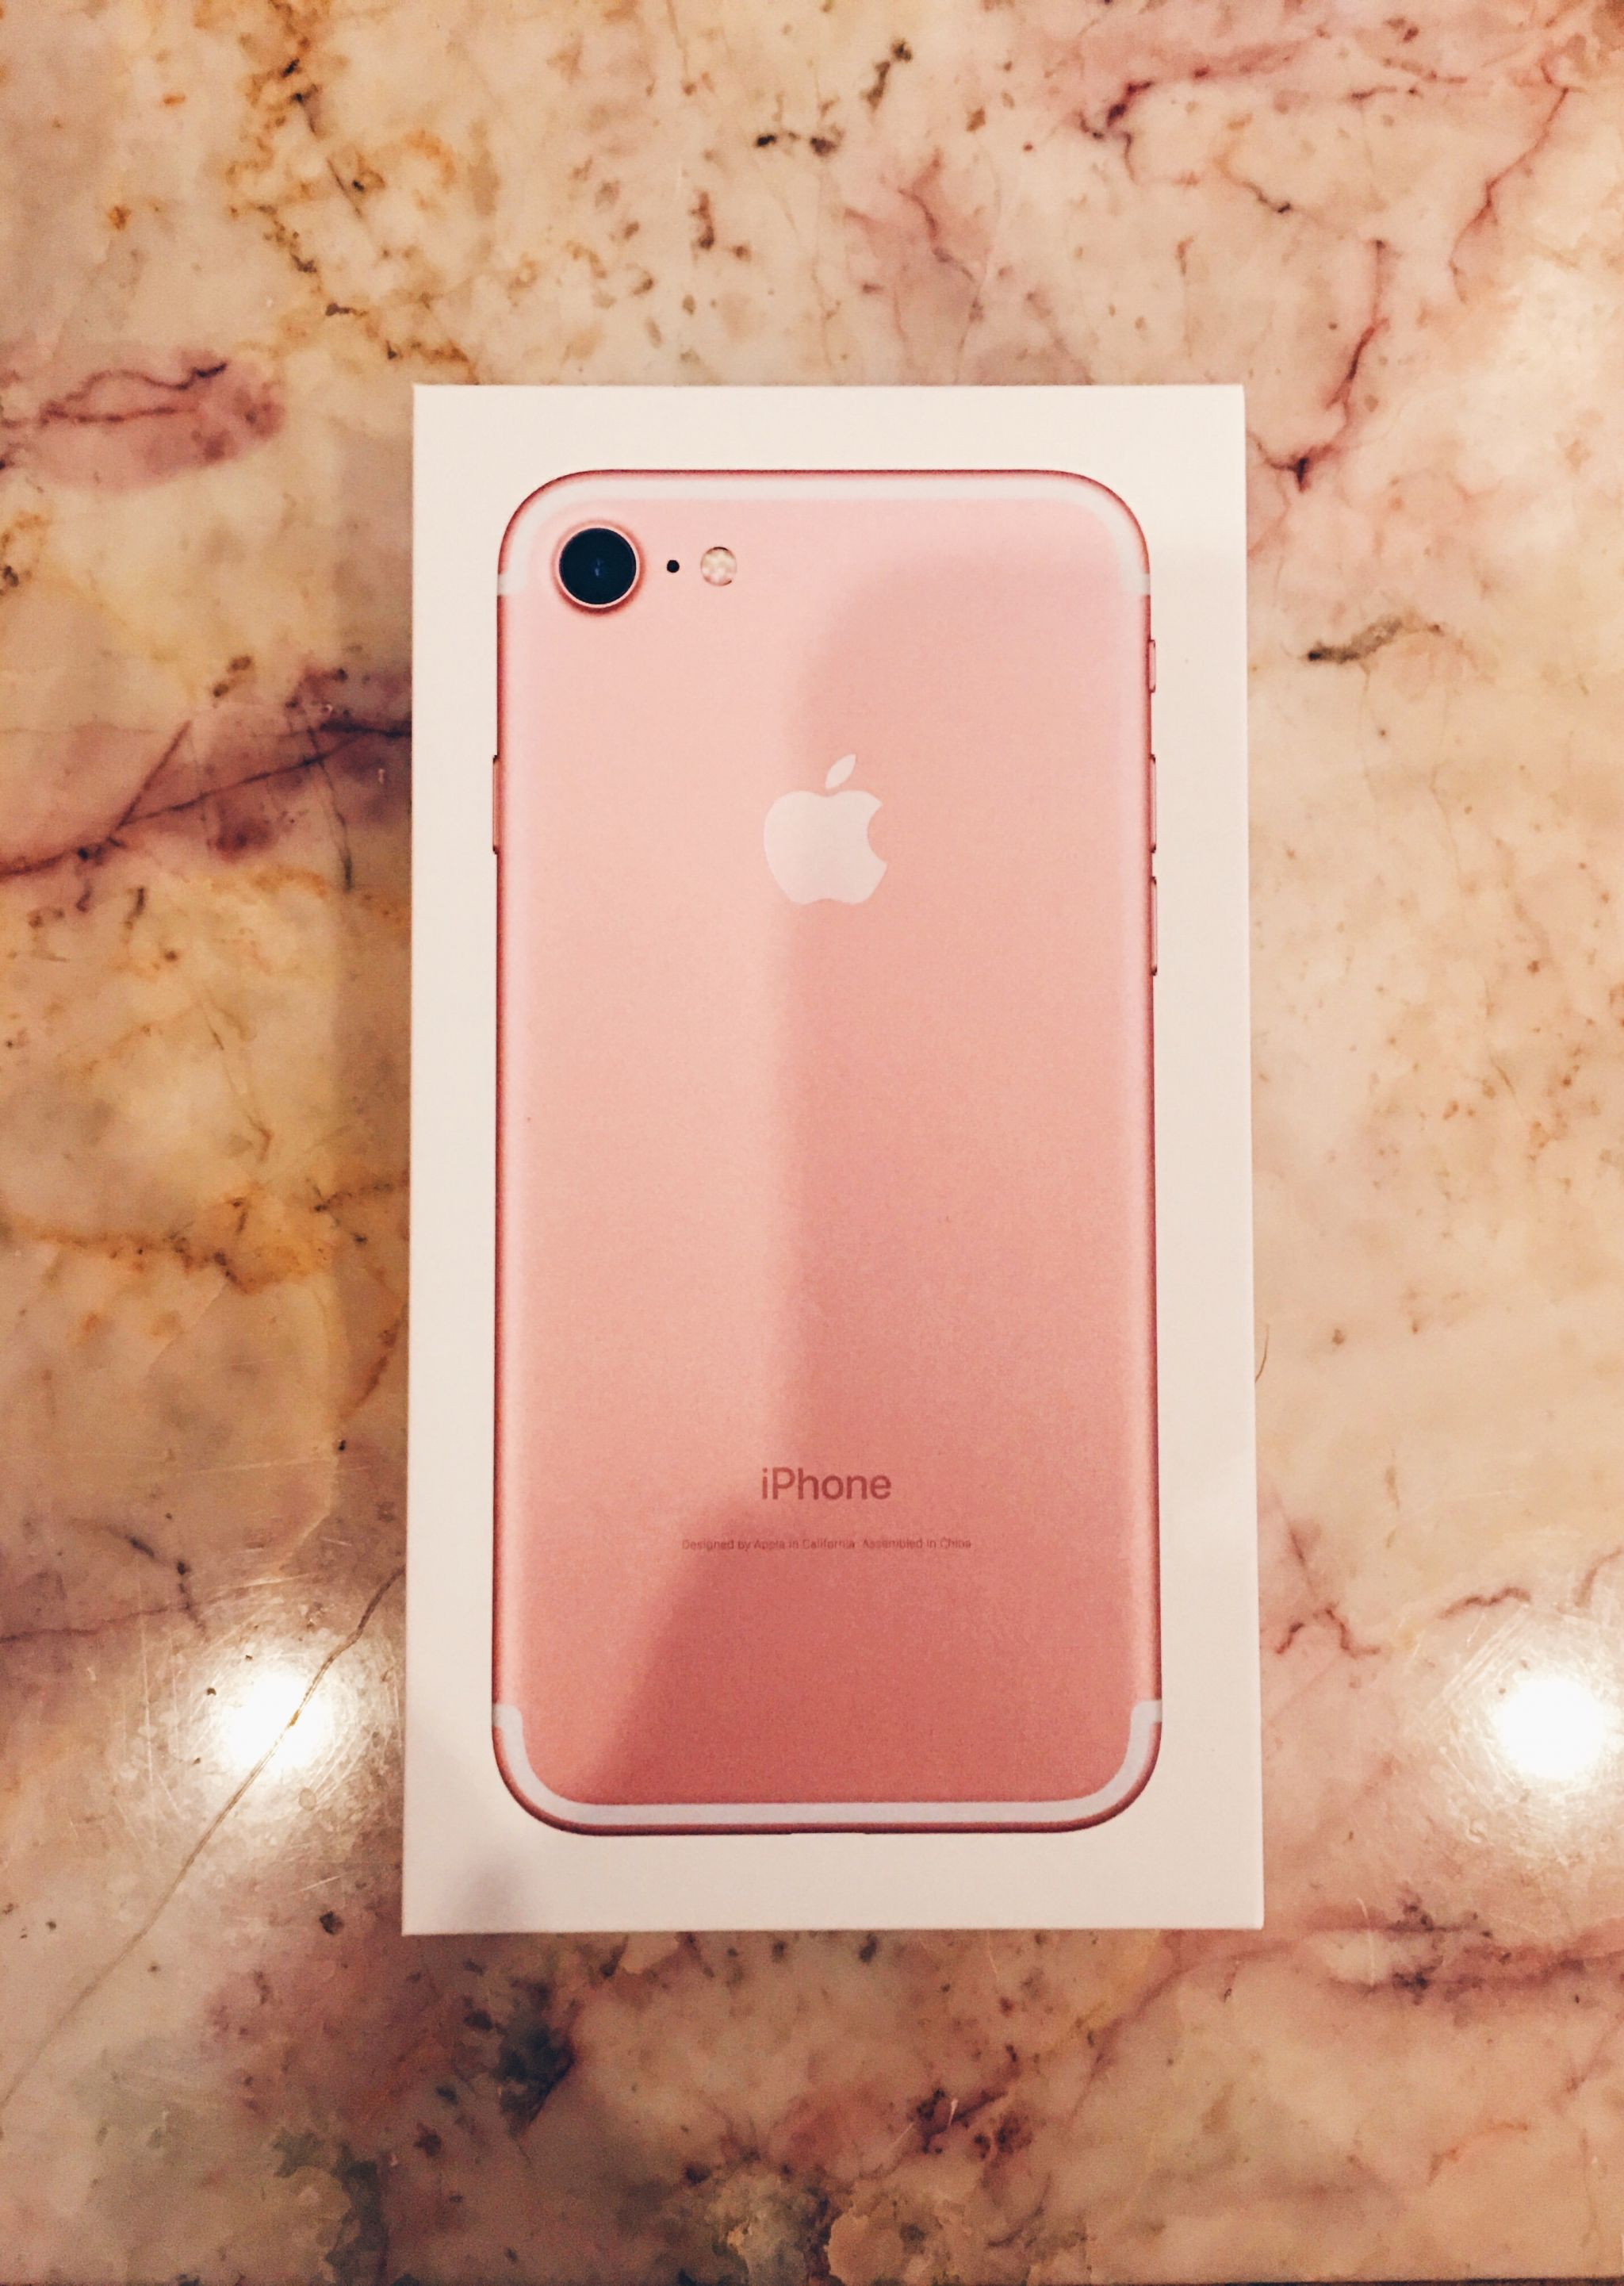 Fantastic Product - APPLE IPHONE 7 User Review - MouthShut com